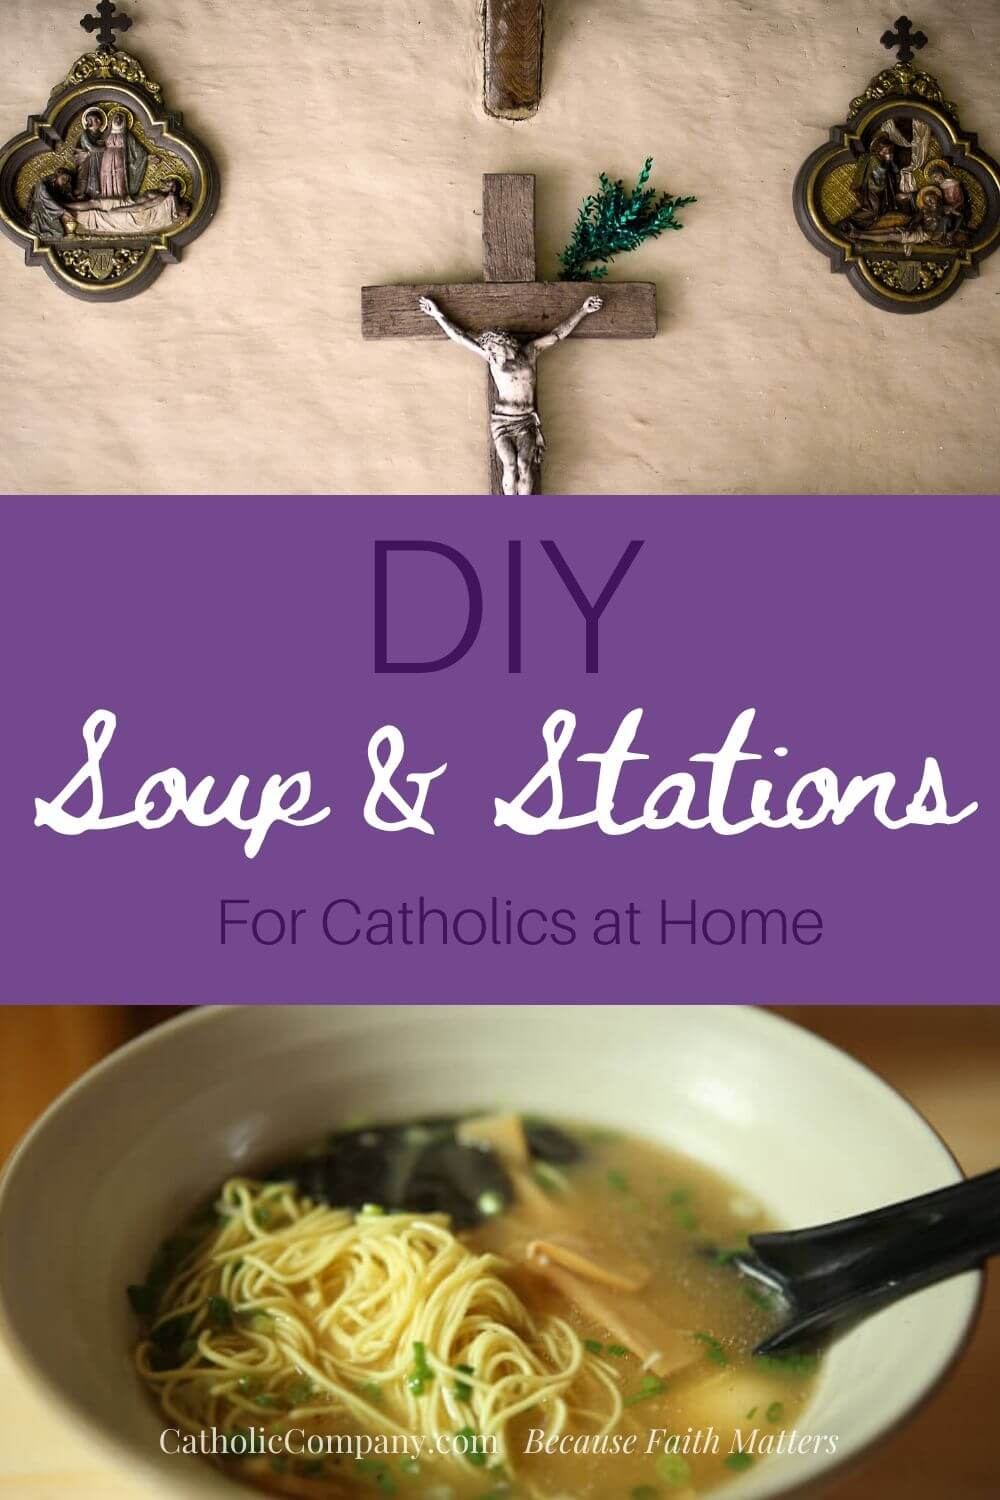 Do Soup & Stations at home! Don't miss out on the beauties of Lent.